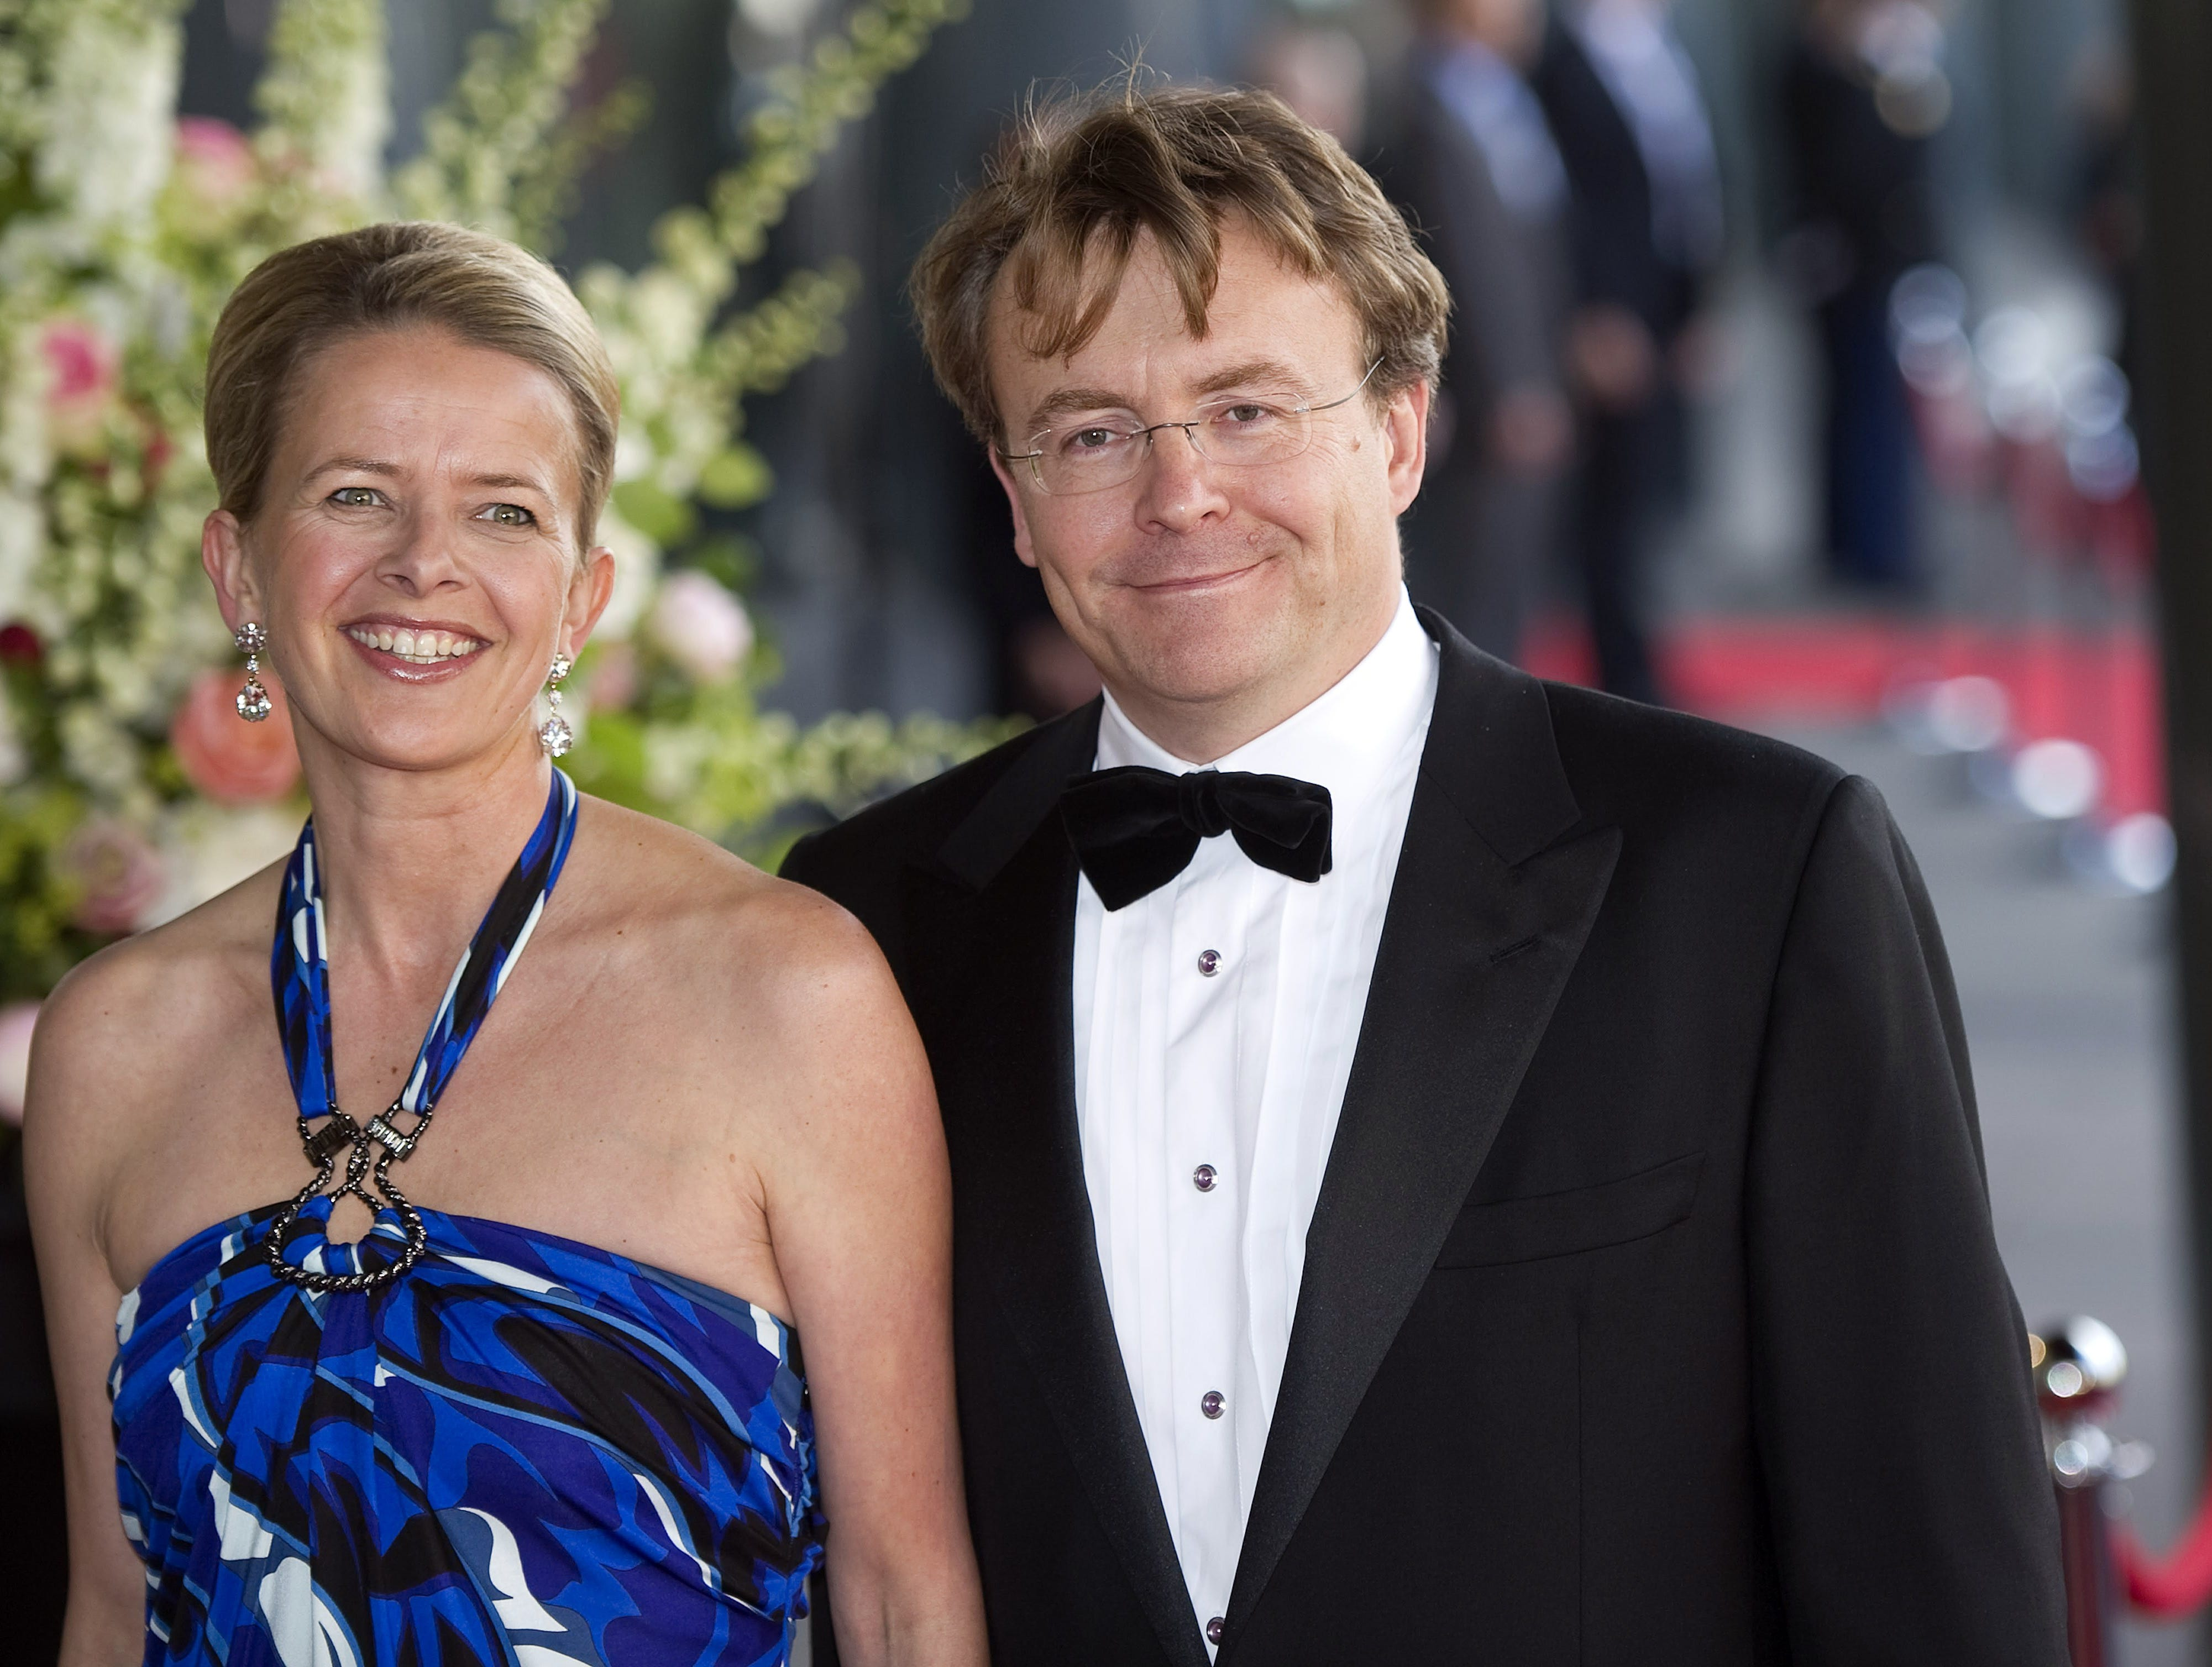 Dutch royal Prince Johan Friso dies following ski accident